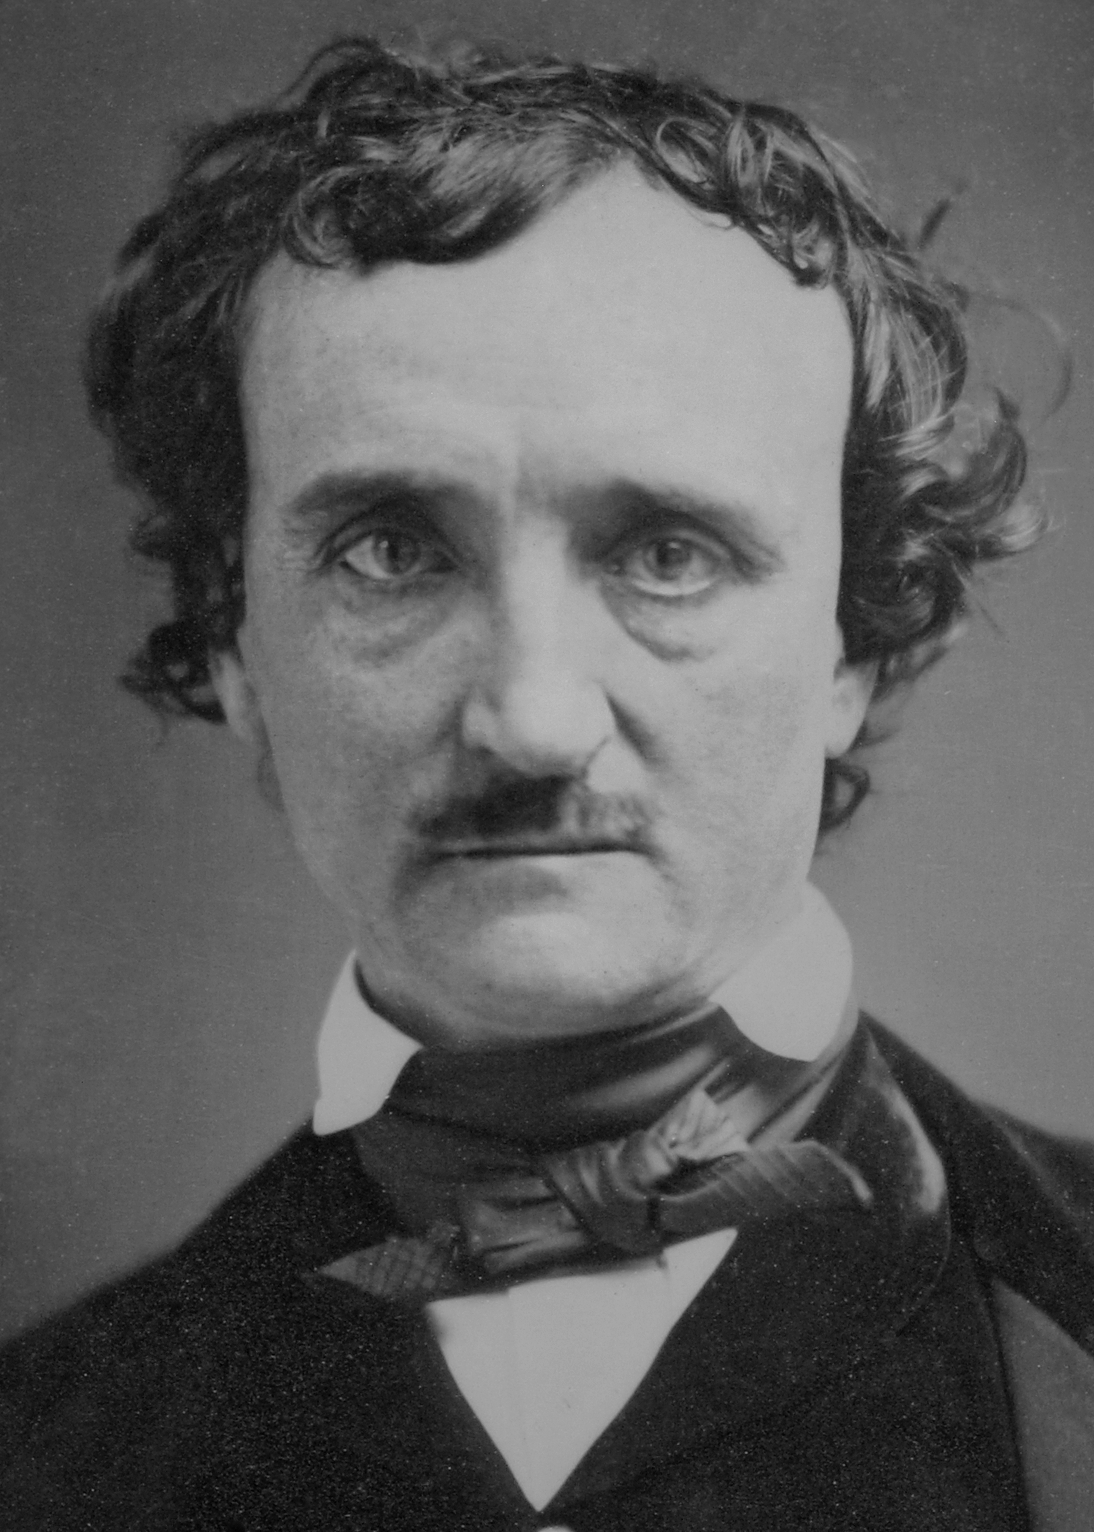 Edgar Allan Poe during 1849, the year of his death.